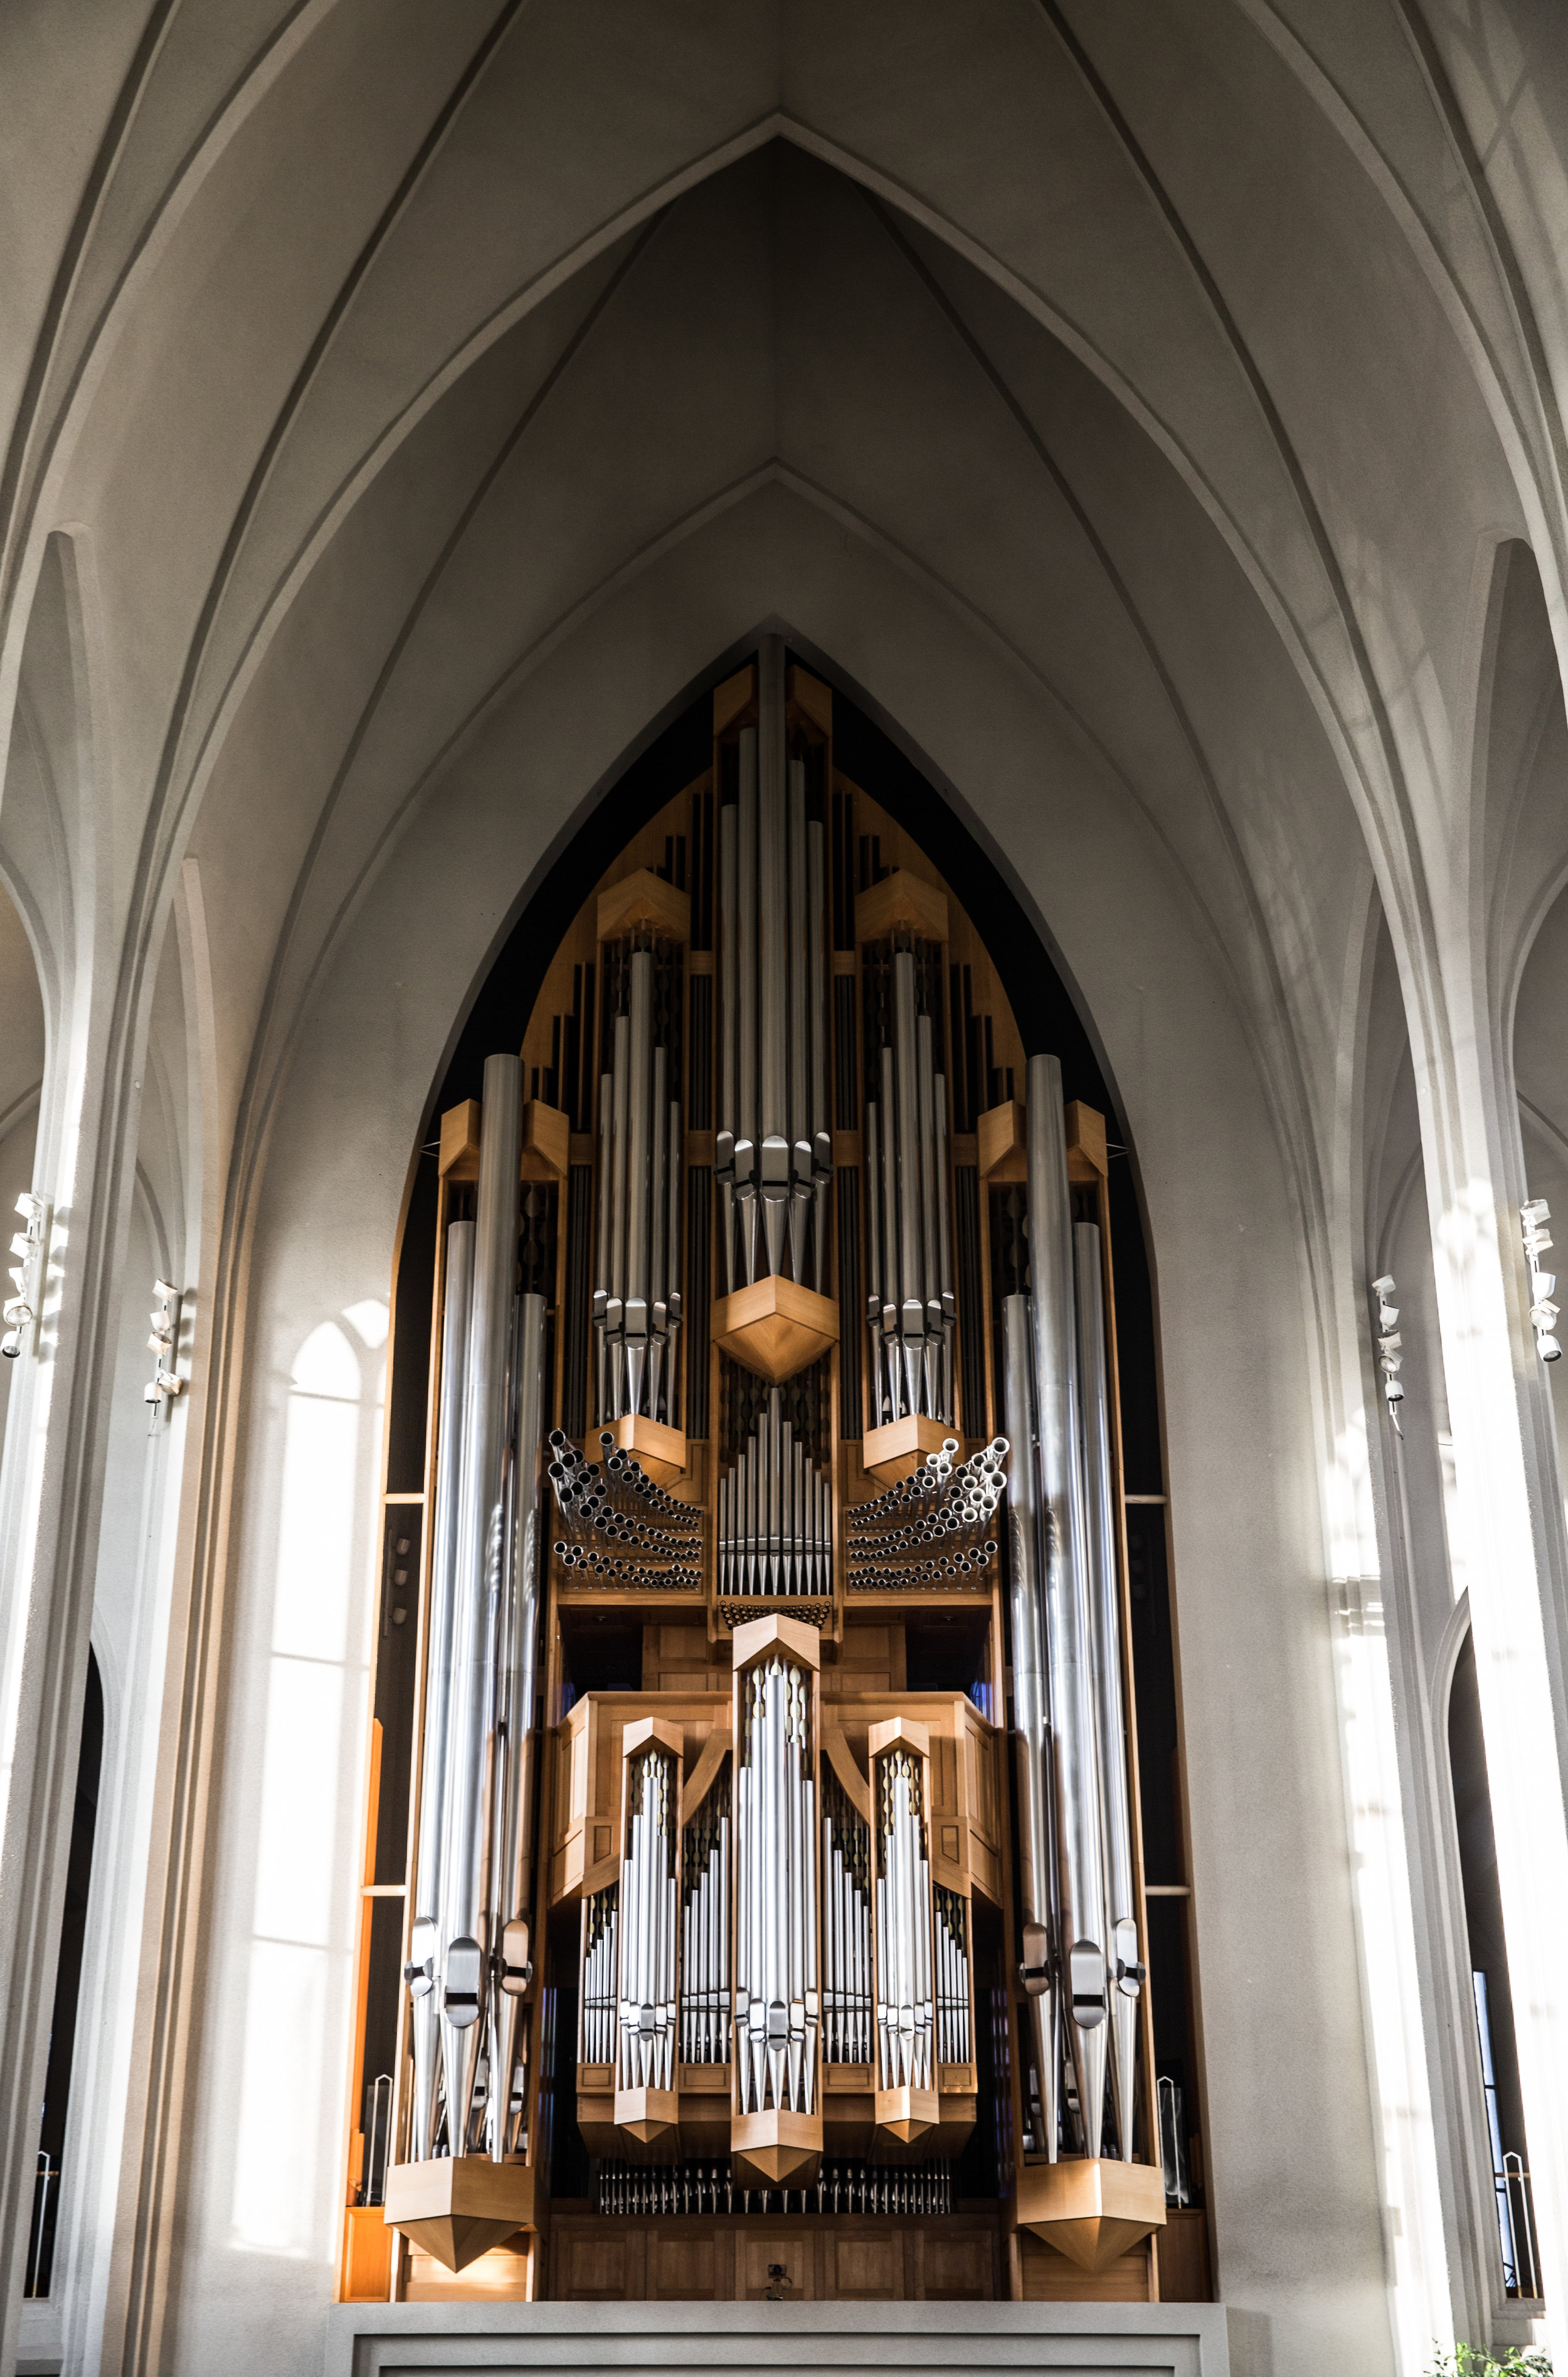 German organ builder Johannes Klais of Bonn was choosen to bring his talents to Iceland. With 102 ranks, 72 stops, and 5275 pipes, it is 15 meters tall and weighs in at 25 tons. Construction of it was finished in 1992.